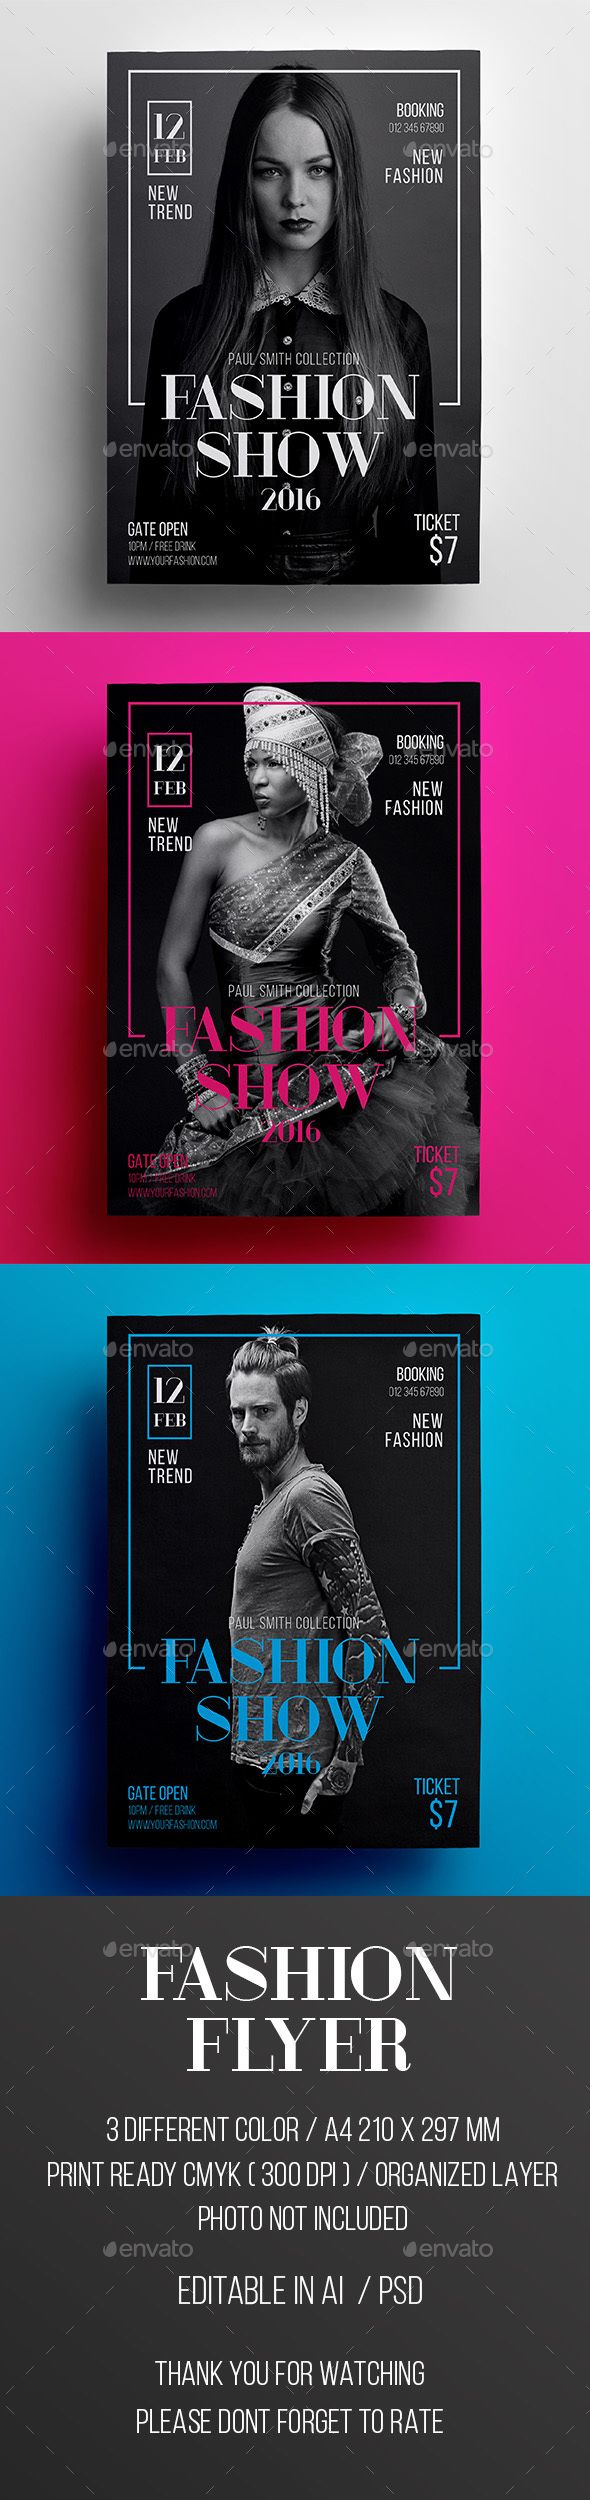 fashion show flyer pinterest flyer printing print templates and template. Black Bedroom Furniture Sets. Home Design Ideas